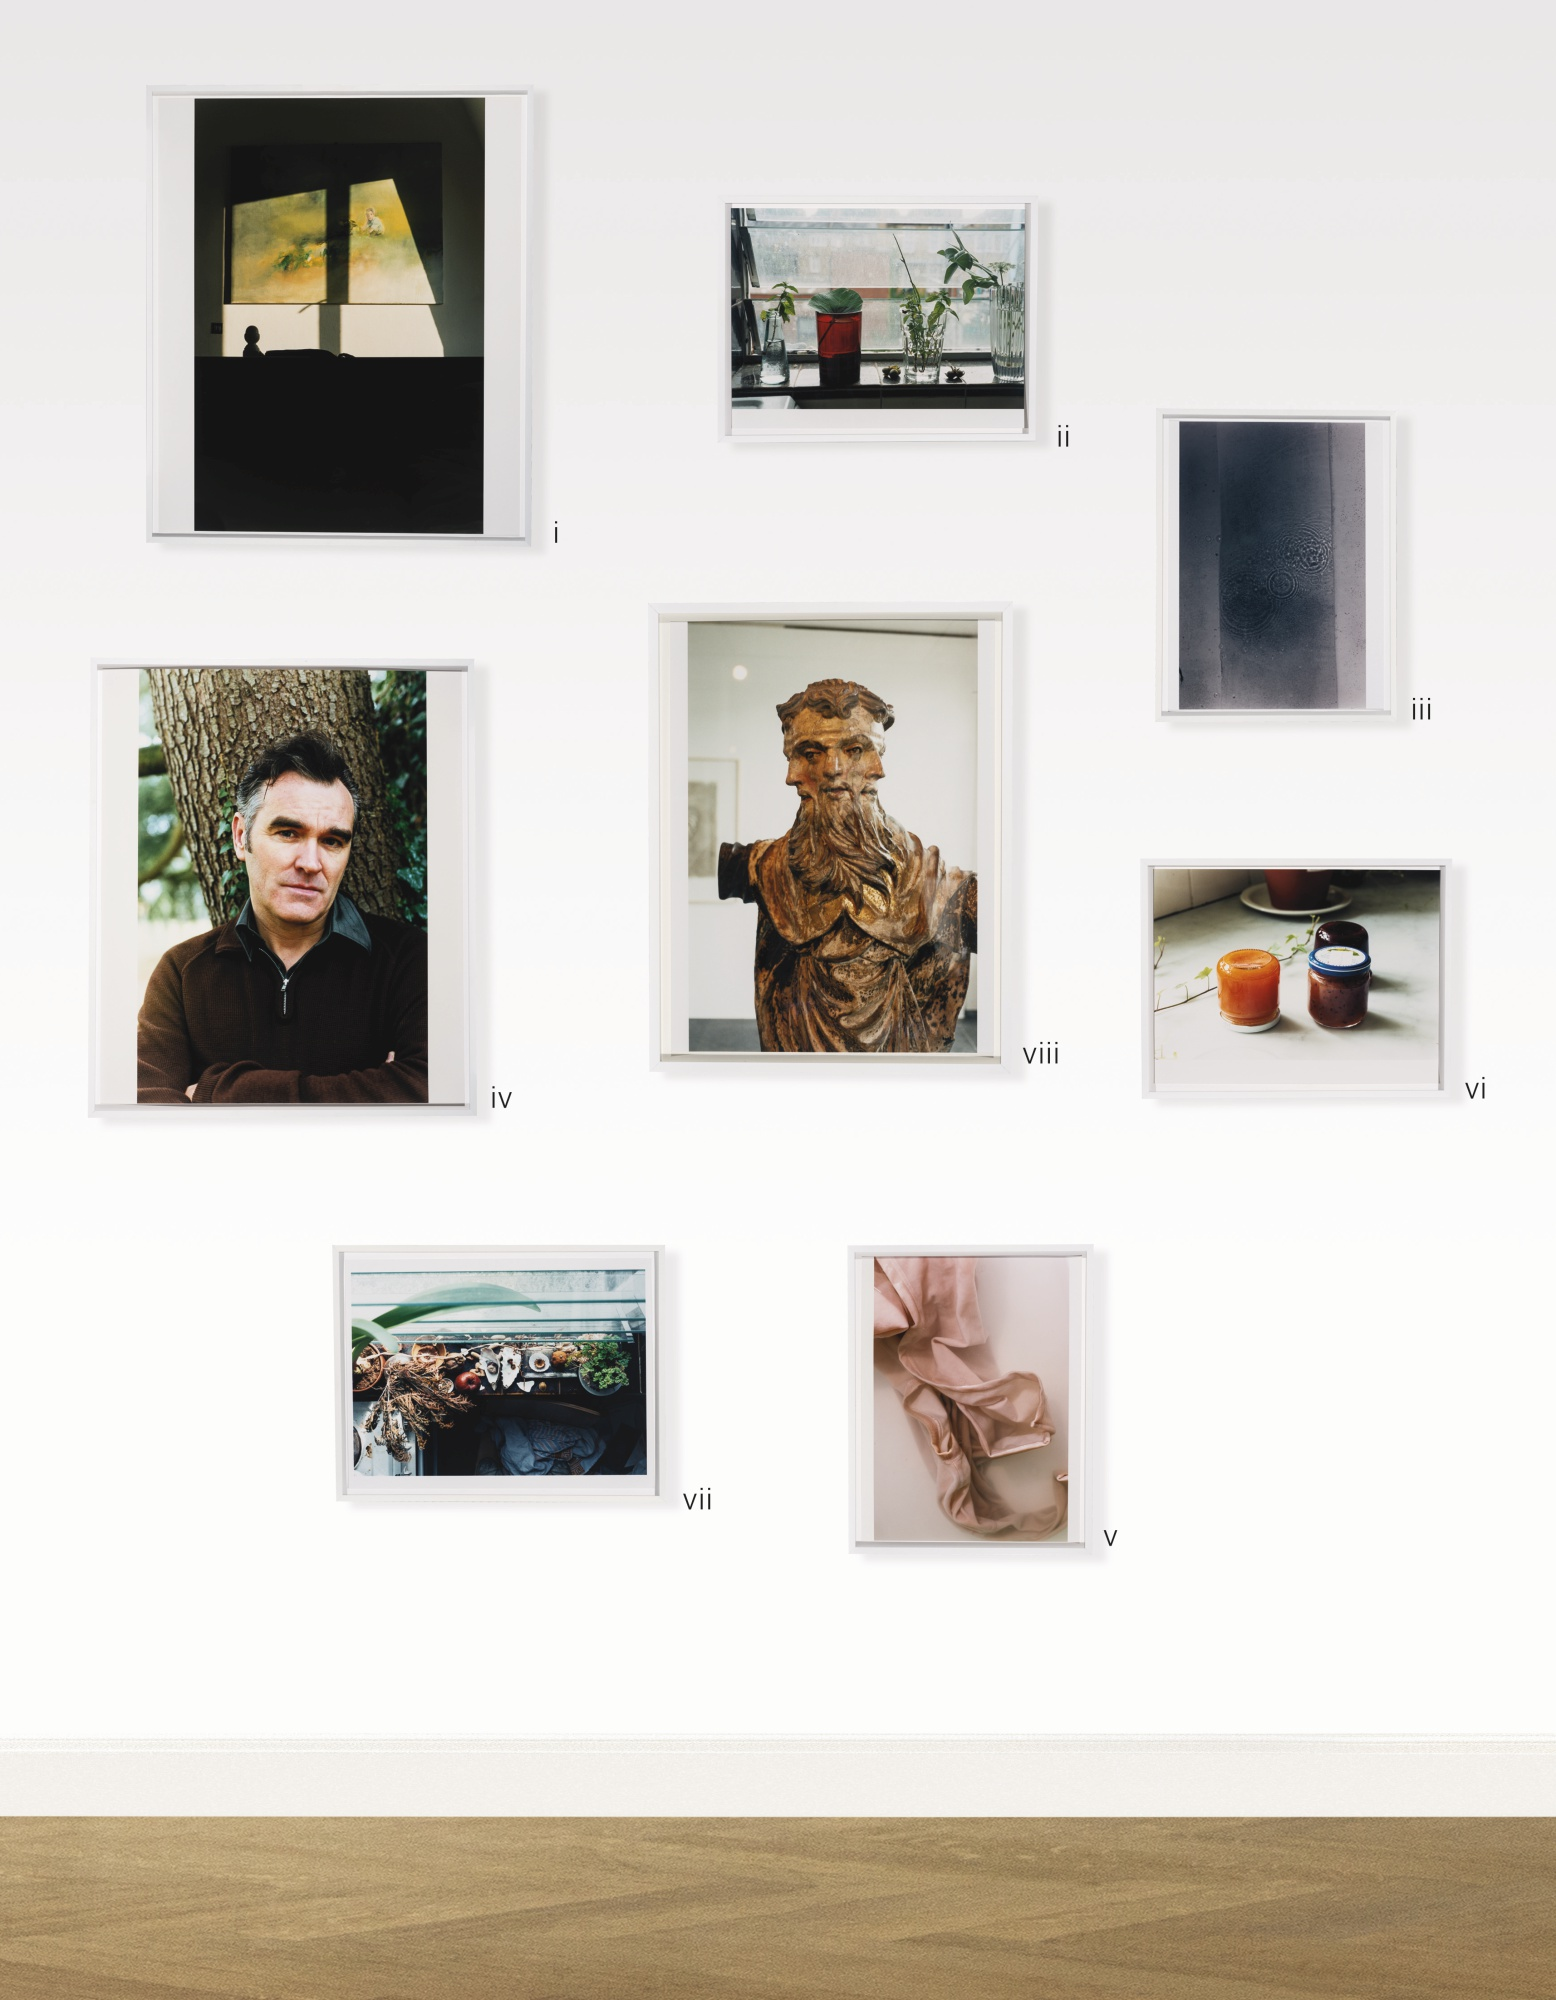 Wolfgang Tillmans-(i) Painting In Sunlight; (ii) Still Life Grays Inn Road 1; (iii) Bubble Rings; (iv) Morrissey (v) Faltenwurg (Submerged) (vi) Untitled (Jam) (vii) Layers (viii) Trinitatis-2003